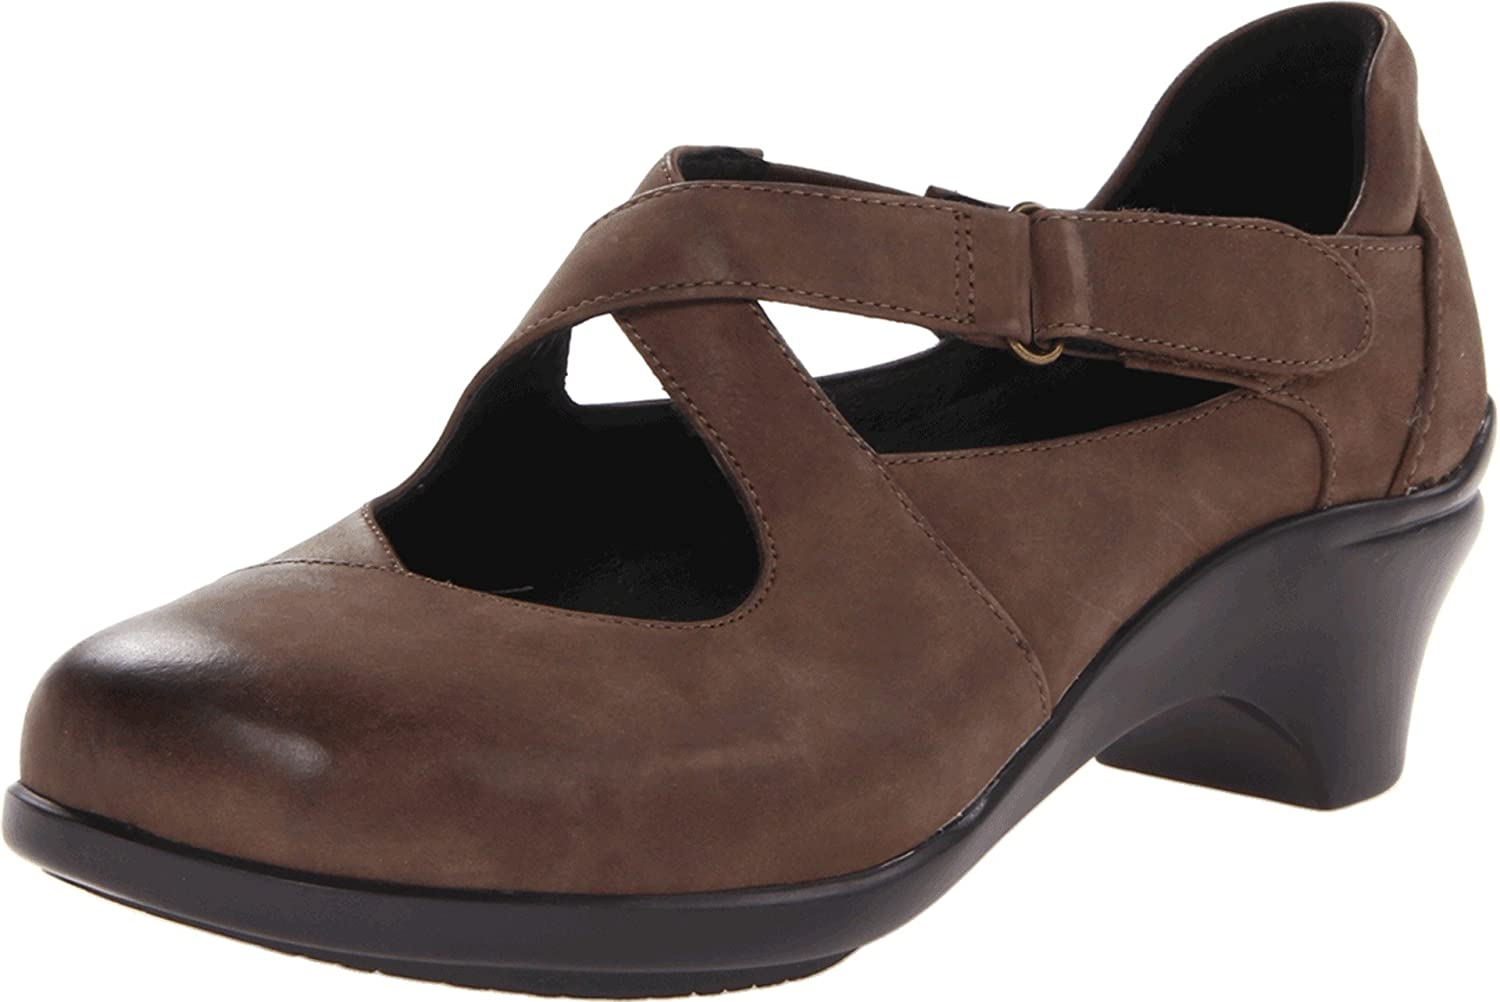 Max Sales of SALE items from new works 70% OFF Aravon Women's Pump Mona